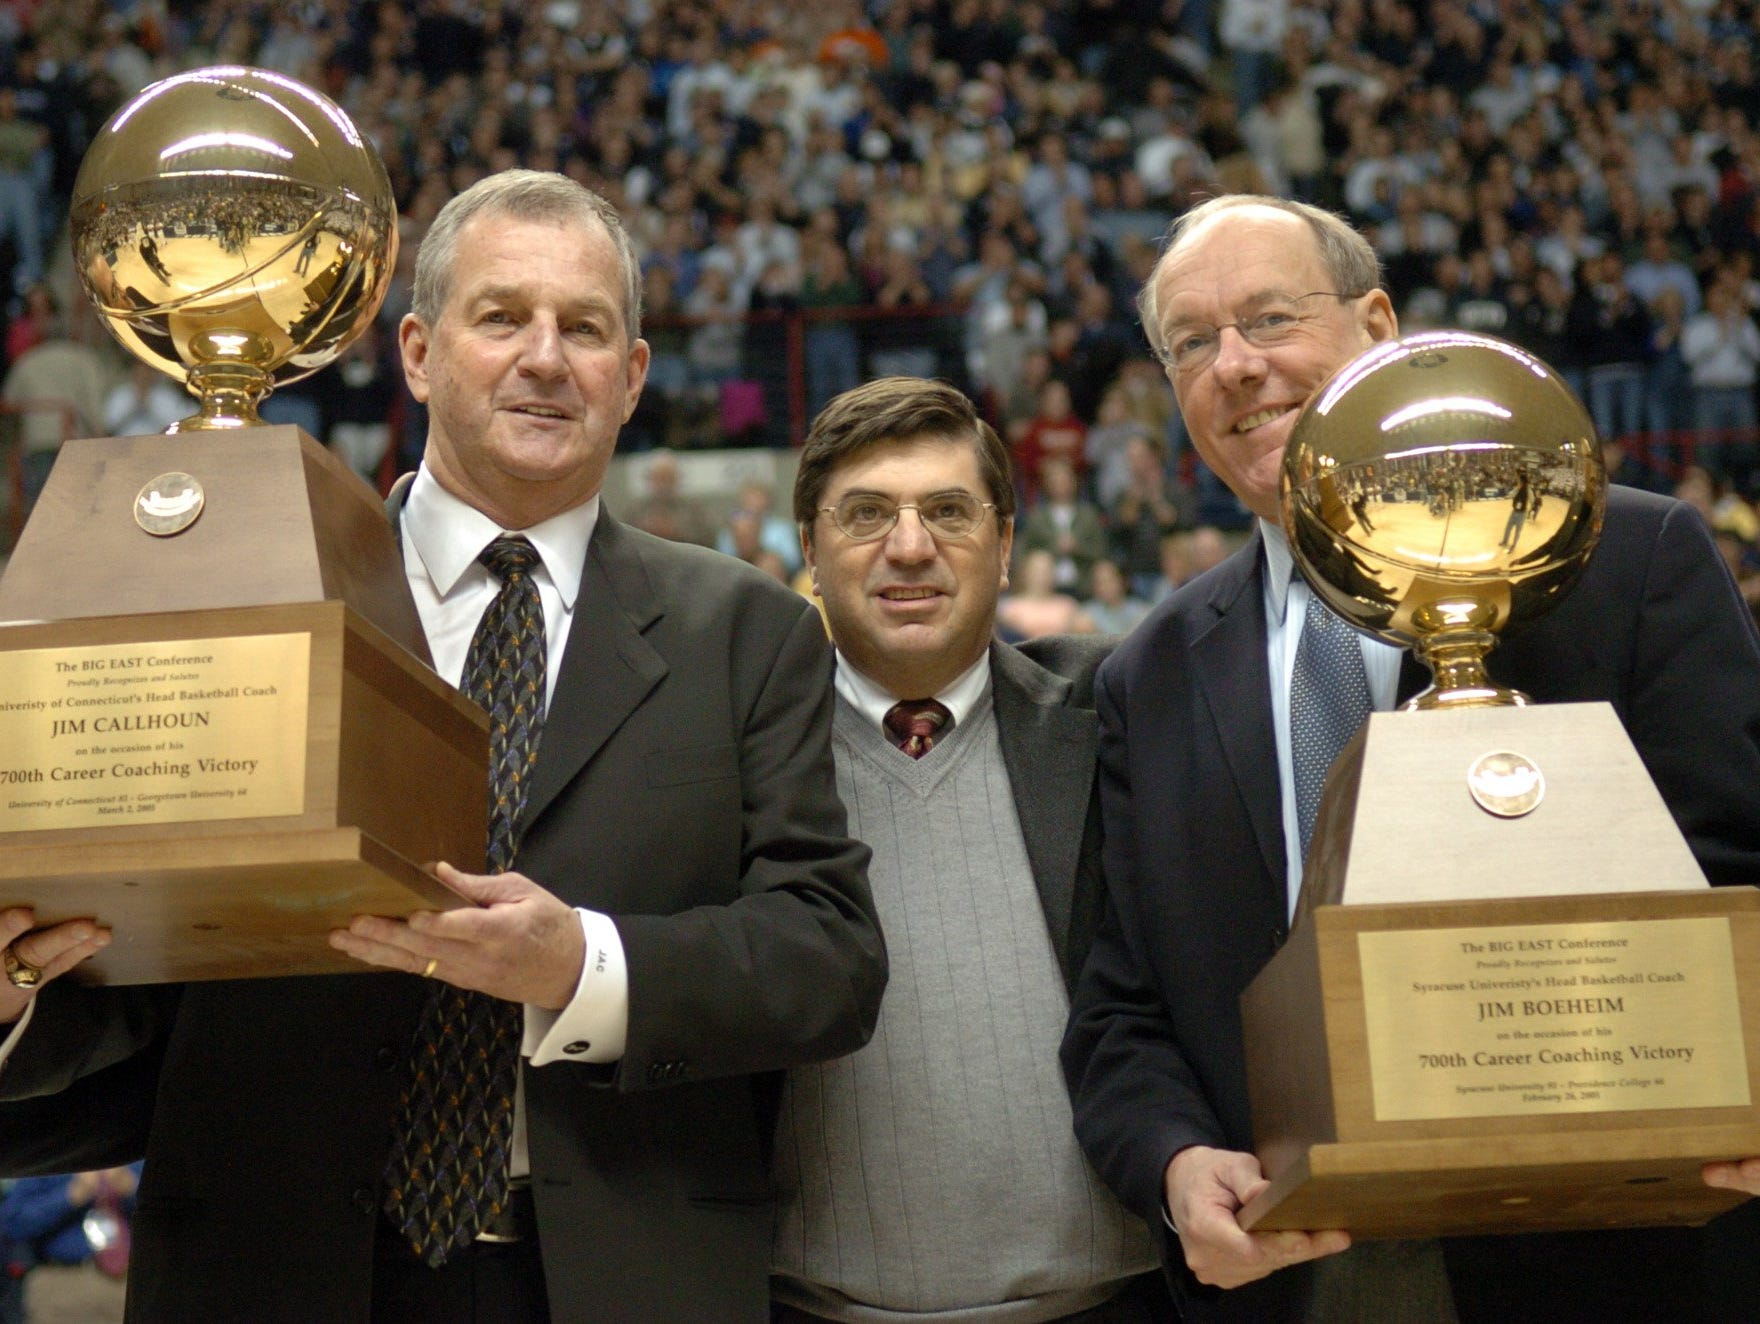 2005: Connecticut coach Jim Calhoun, left, and Syracuse coach Jim Boeheim, flank Big East Commissioner Mike Tranghese after they were presented with their trophies for coaches with 700 wins, before the start of a game in Storrs, Conn., in this March 5, 2005 photo. Boeheim and Calhoun were elected to the Basketball Hall of Fame on Monday April 4, 2005. (AP Photo/Steve Miller)